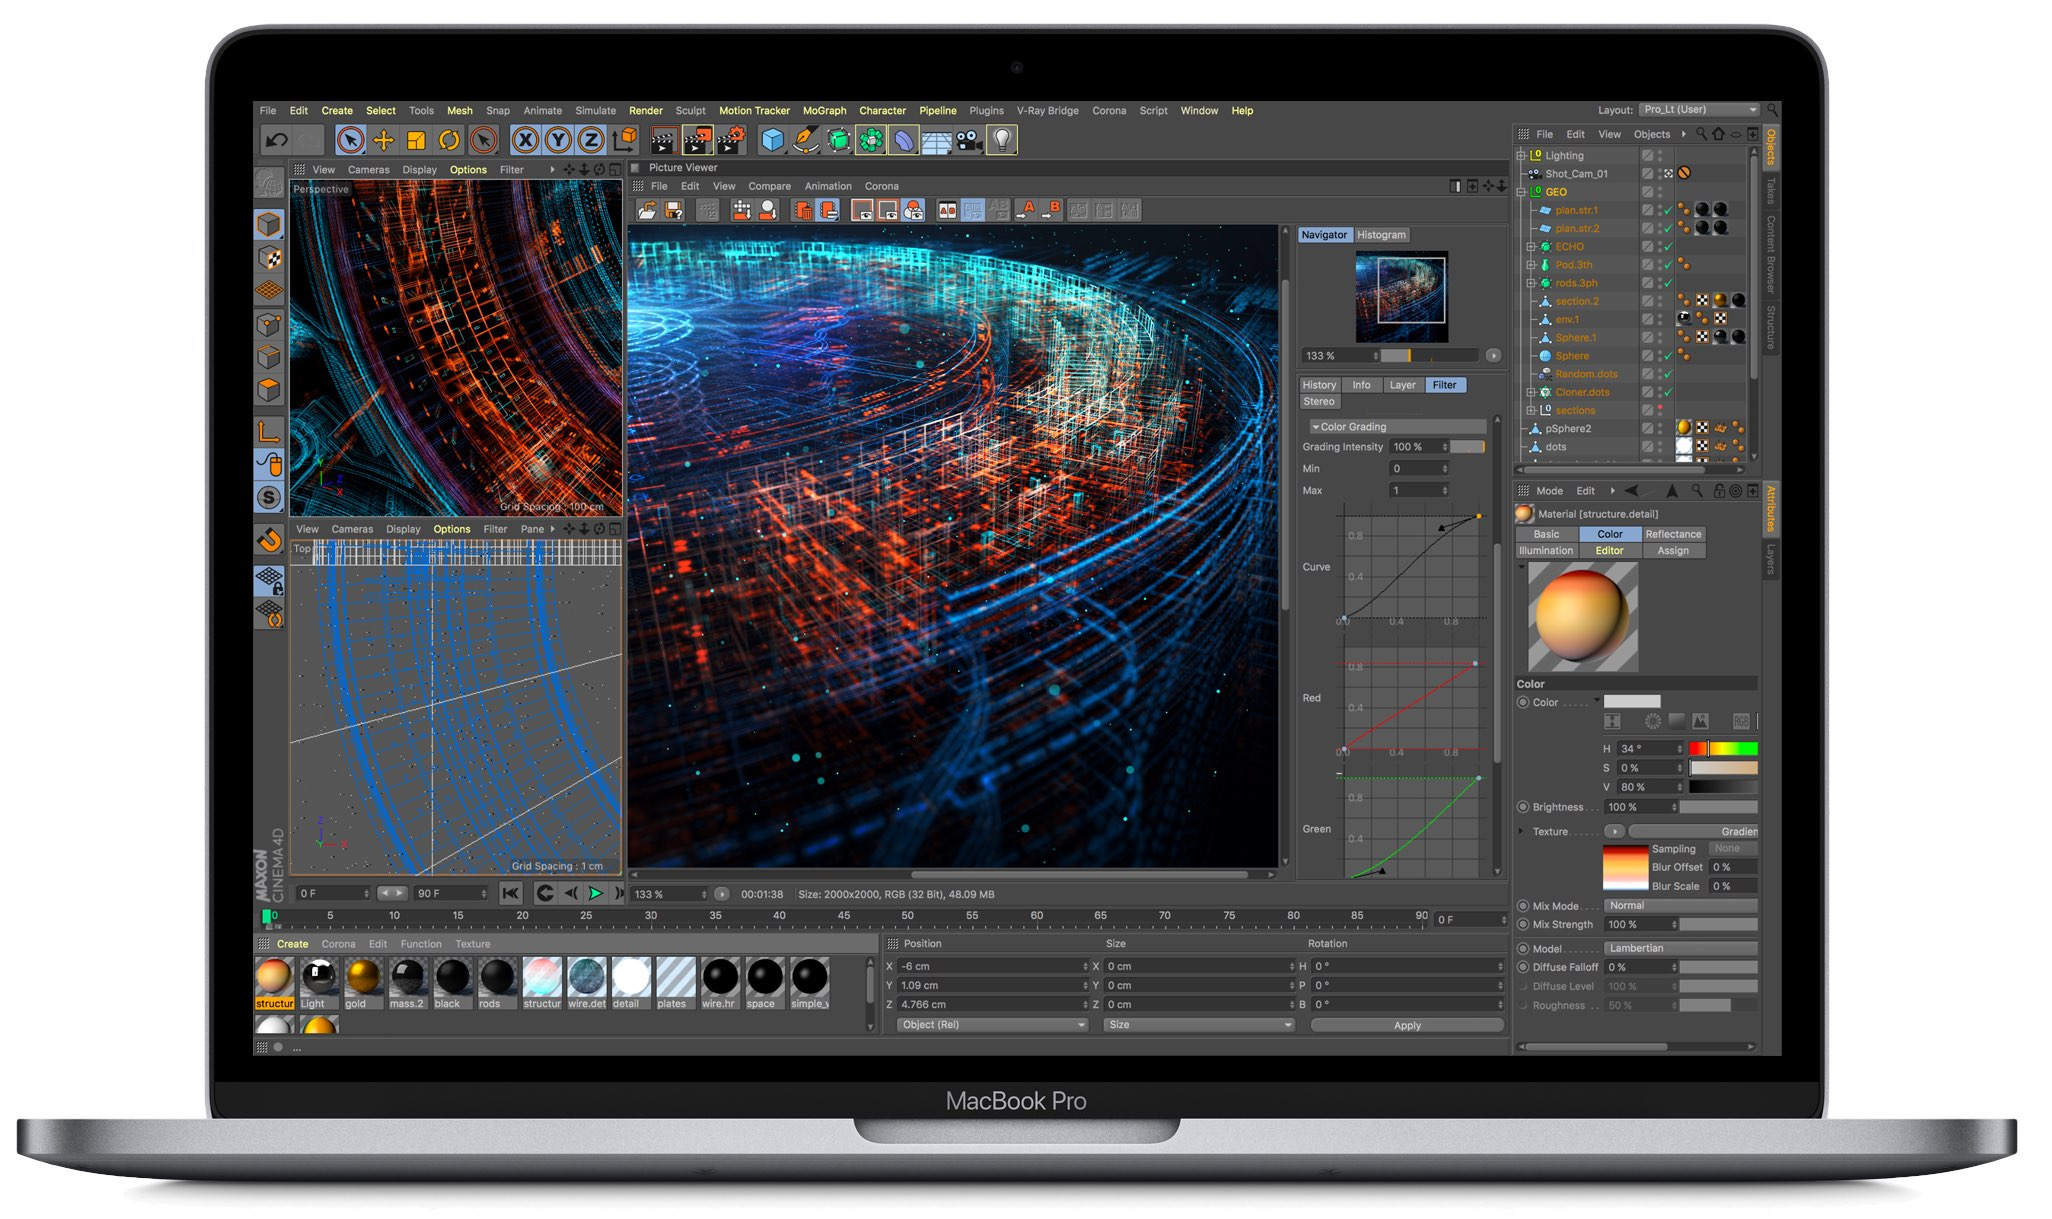 A press image showing the refreshed MacBook Pro models for 2018 featuring a True Tone-enabled Retina display